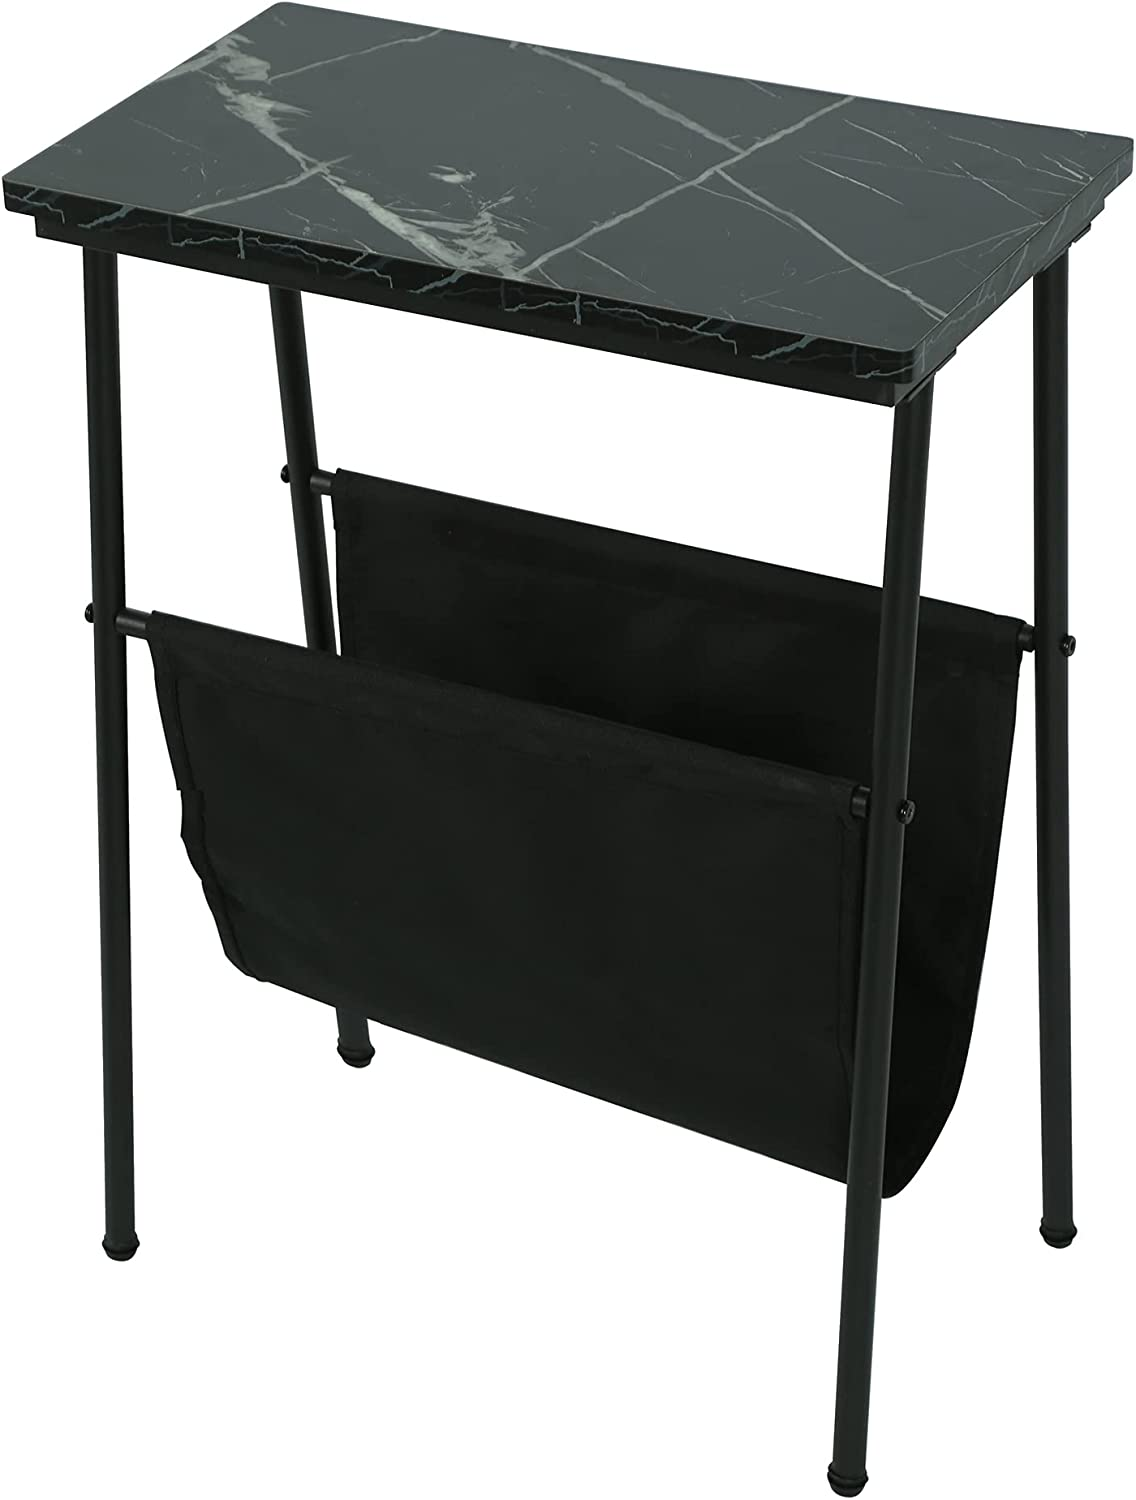 Narrow End Max 62% OFF Table with Magazine Sofa f Sling Beside Holder At the price